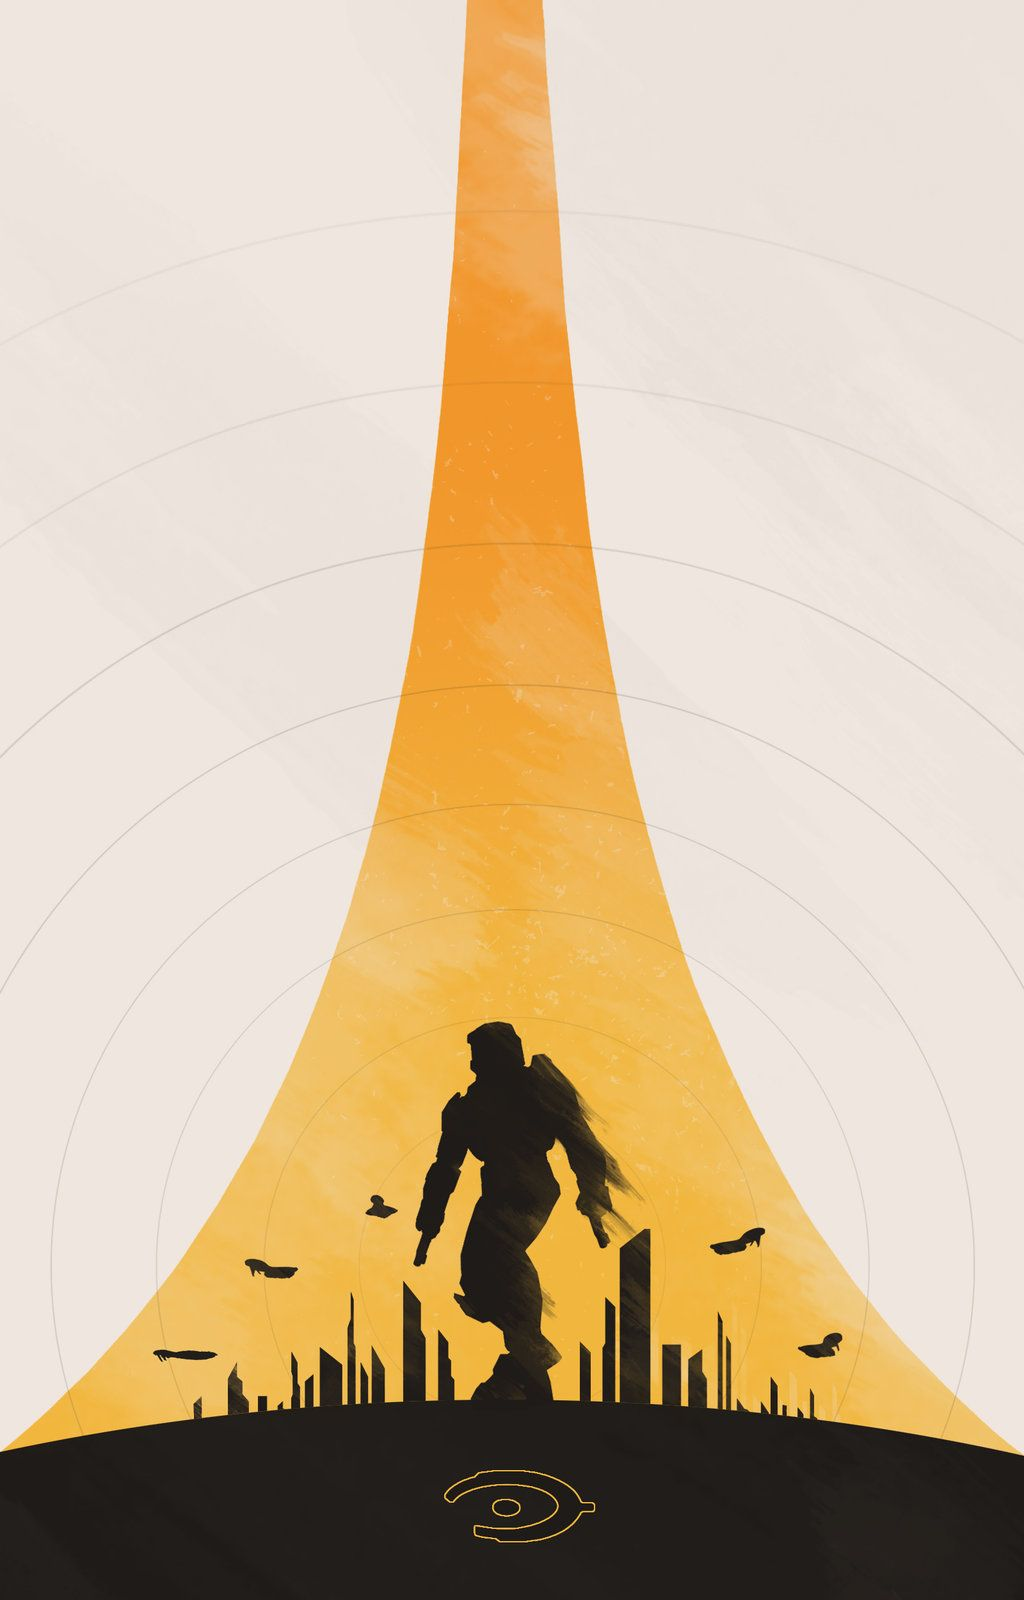 Halo Minimalist Poster Created By Colin Morella Halo 2 Anniversary Minimalist Poster Minimalism Poster